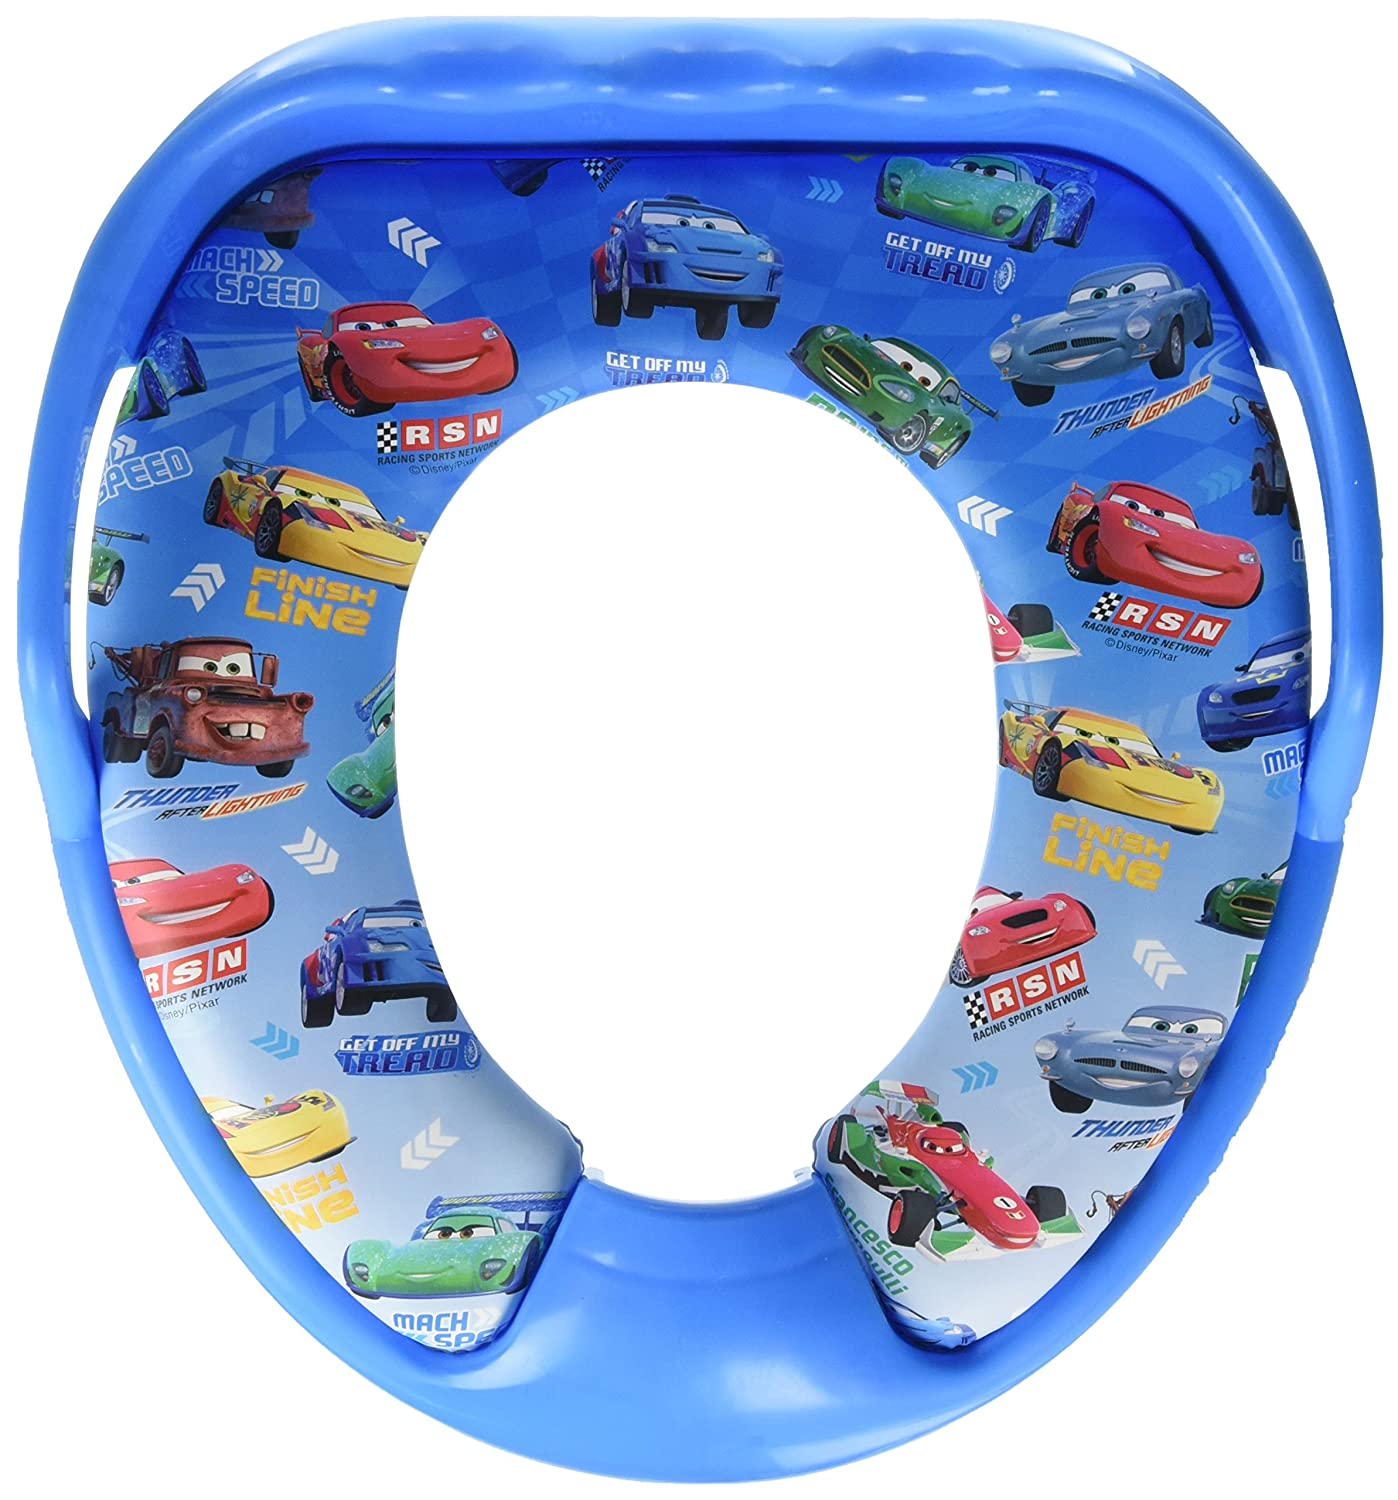 Amazon.com : Disney Pixar Cars - Lightining Mcqueen Toilet Soft ...